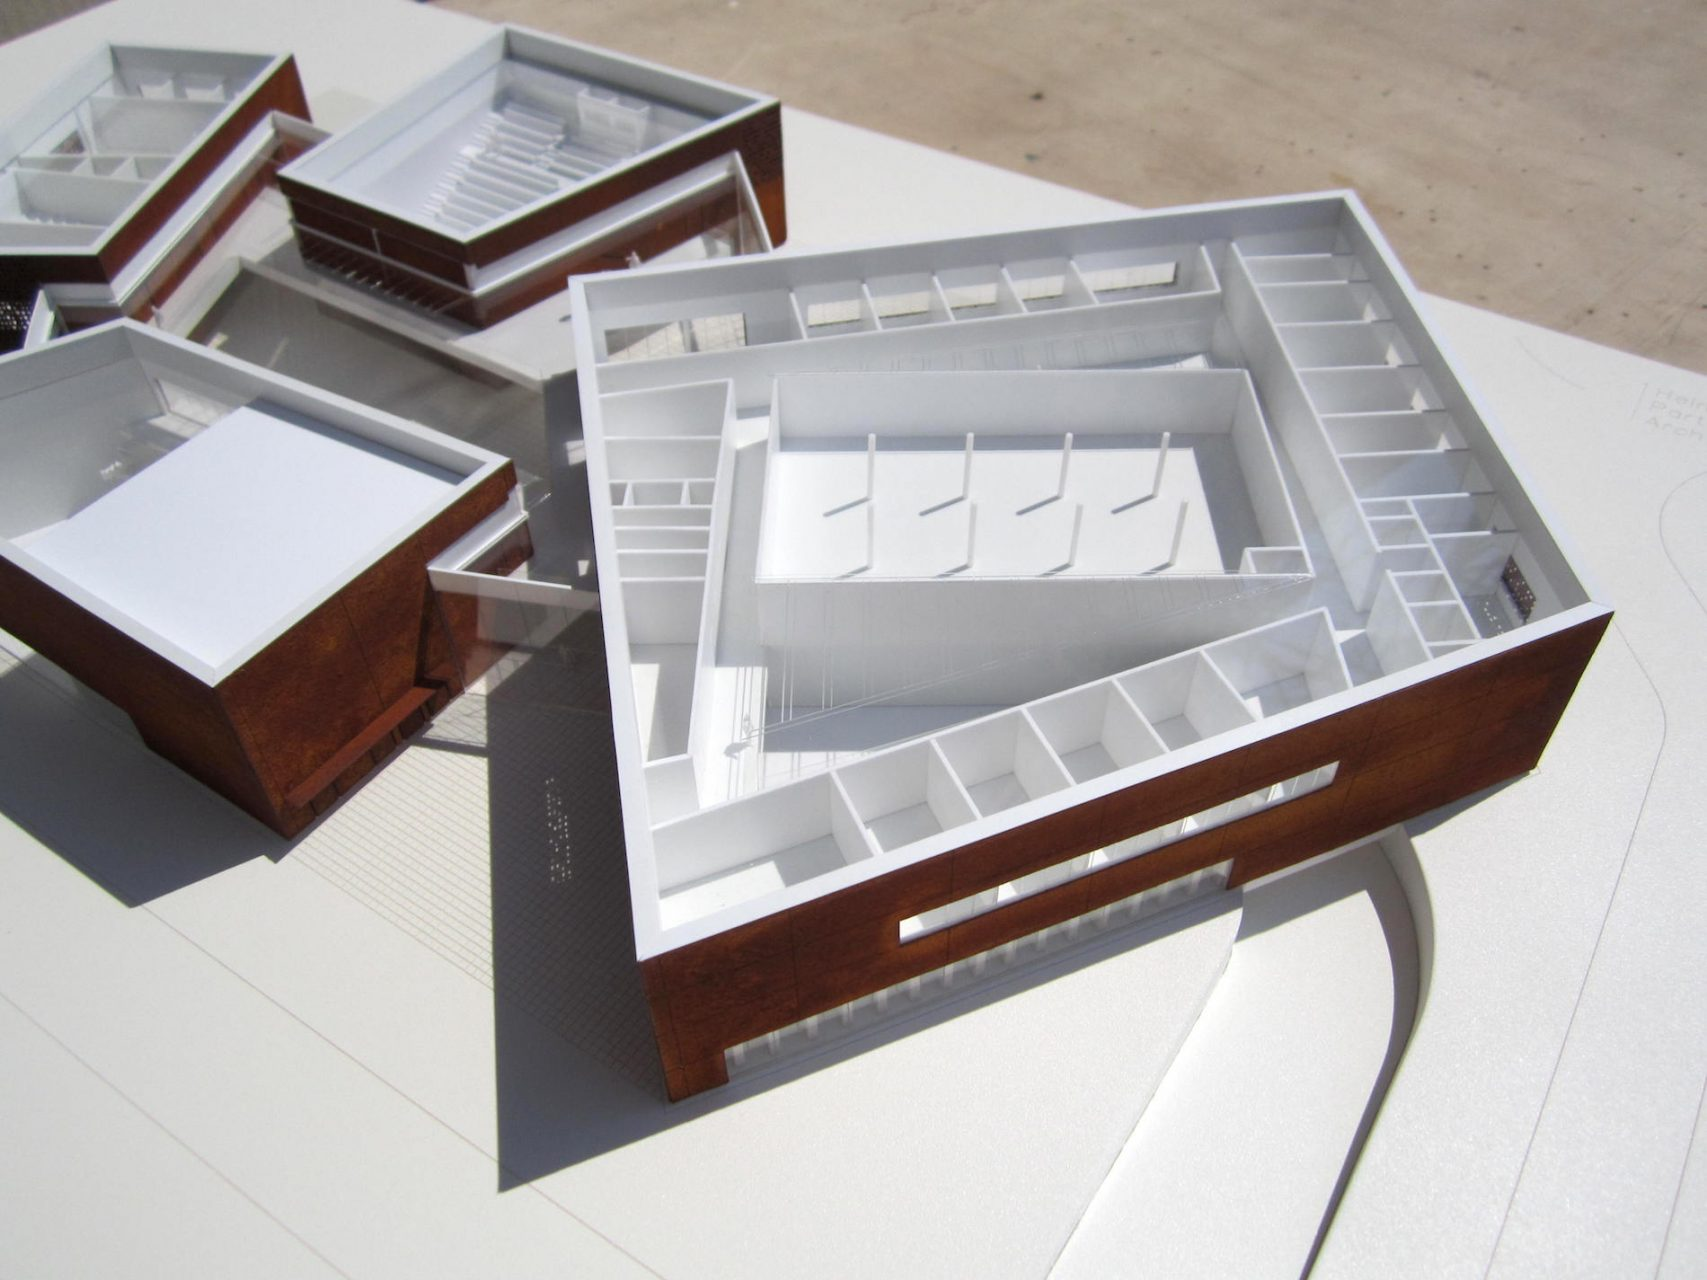 onimo_architectural_models_HWP_NEWTON_200_05